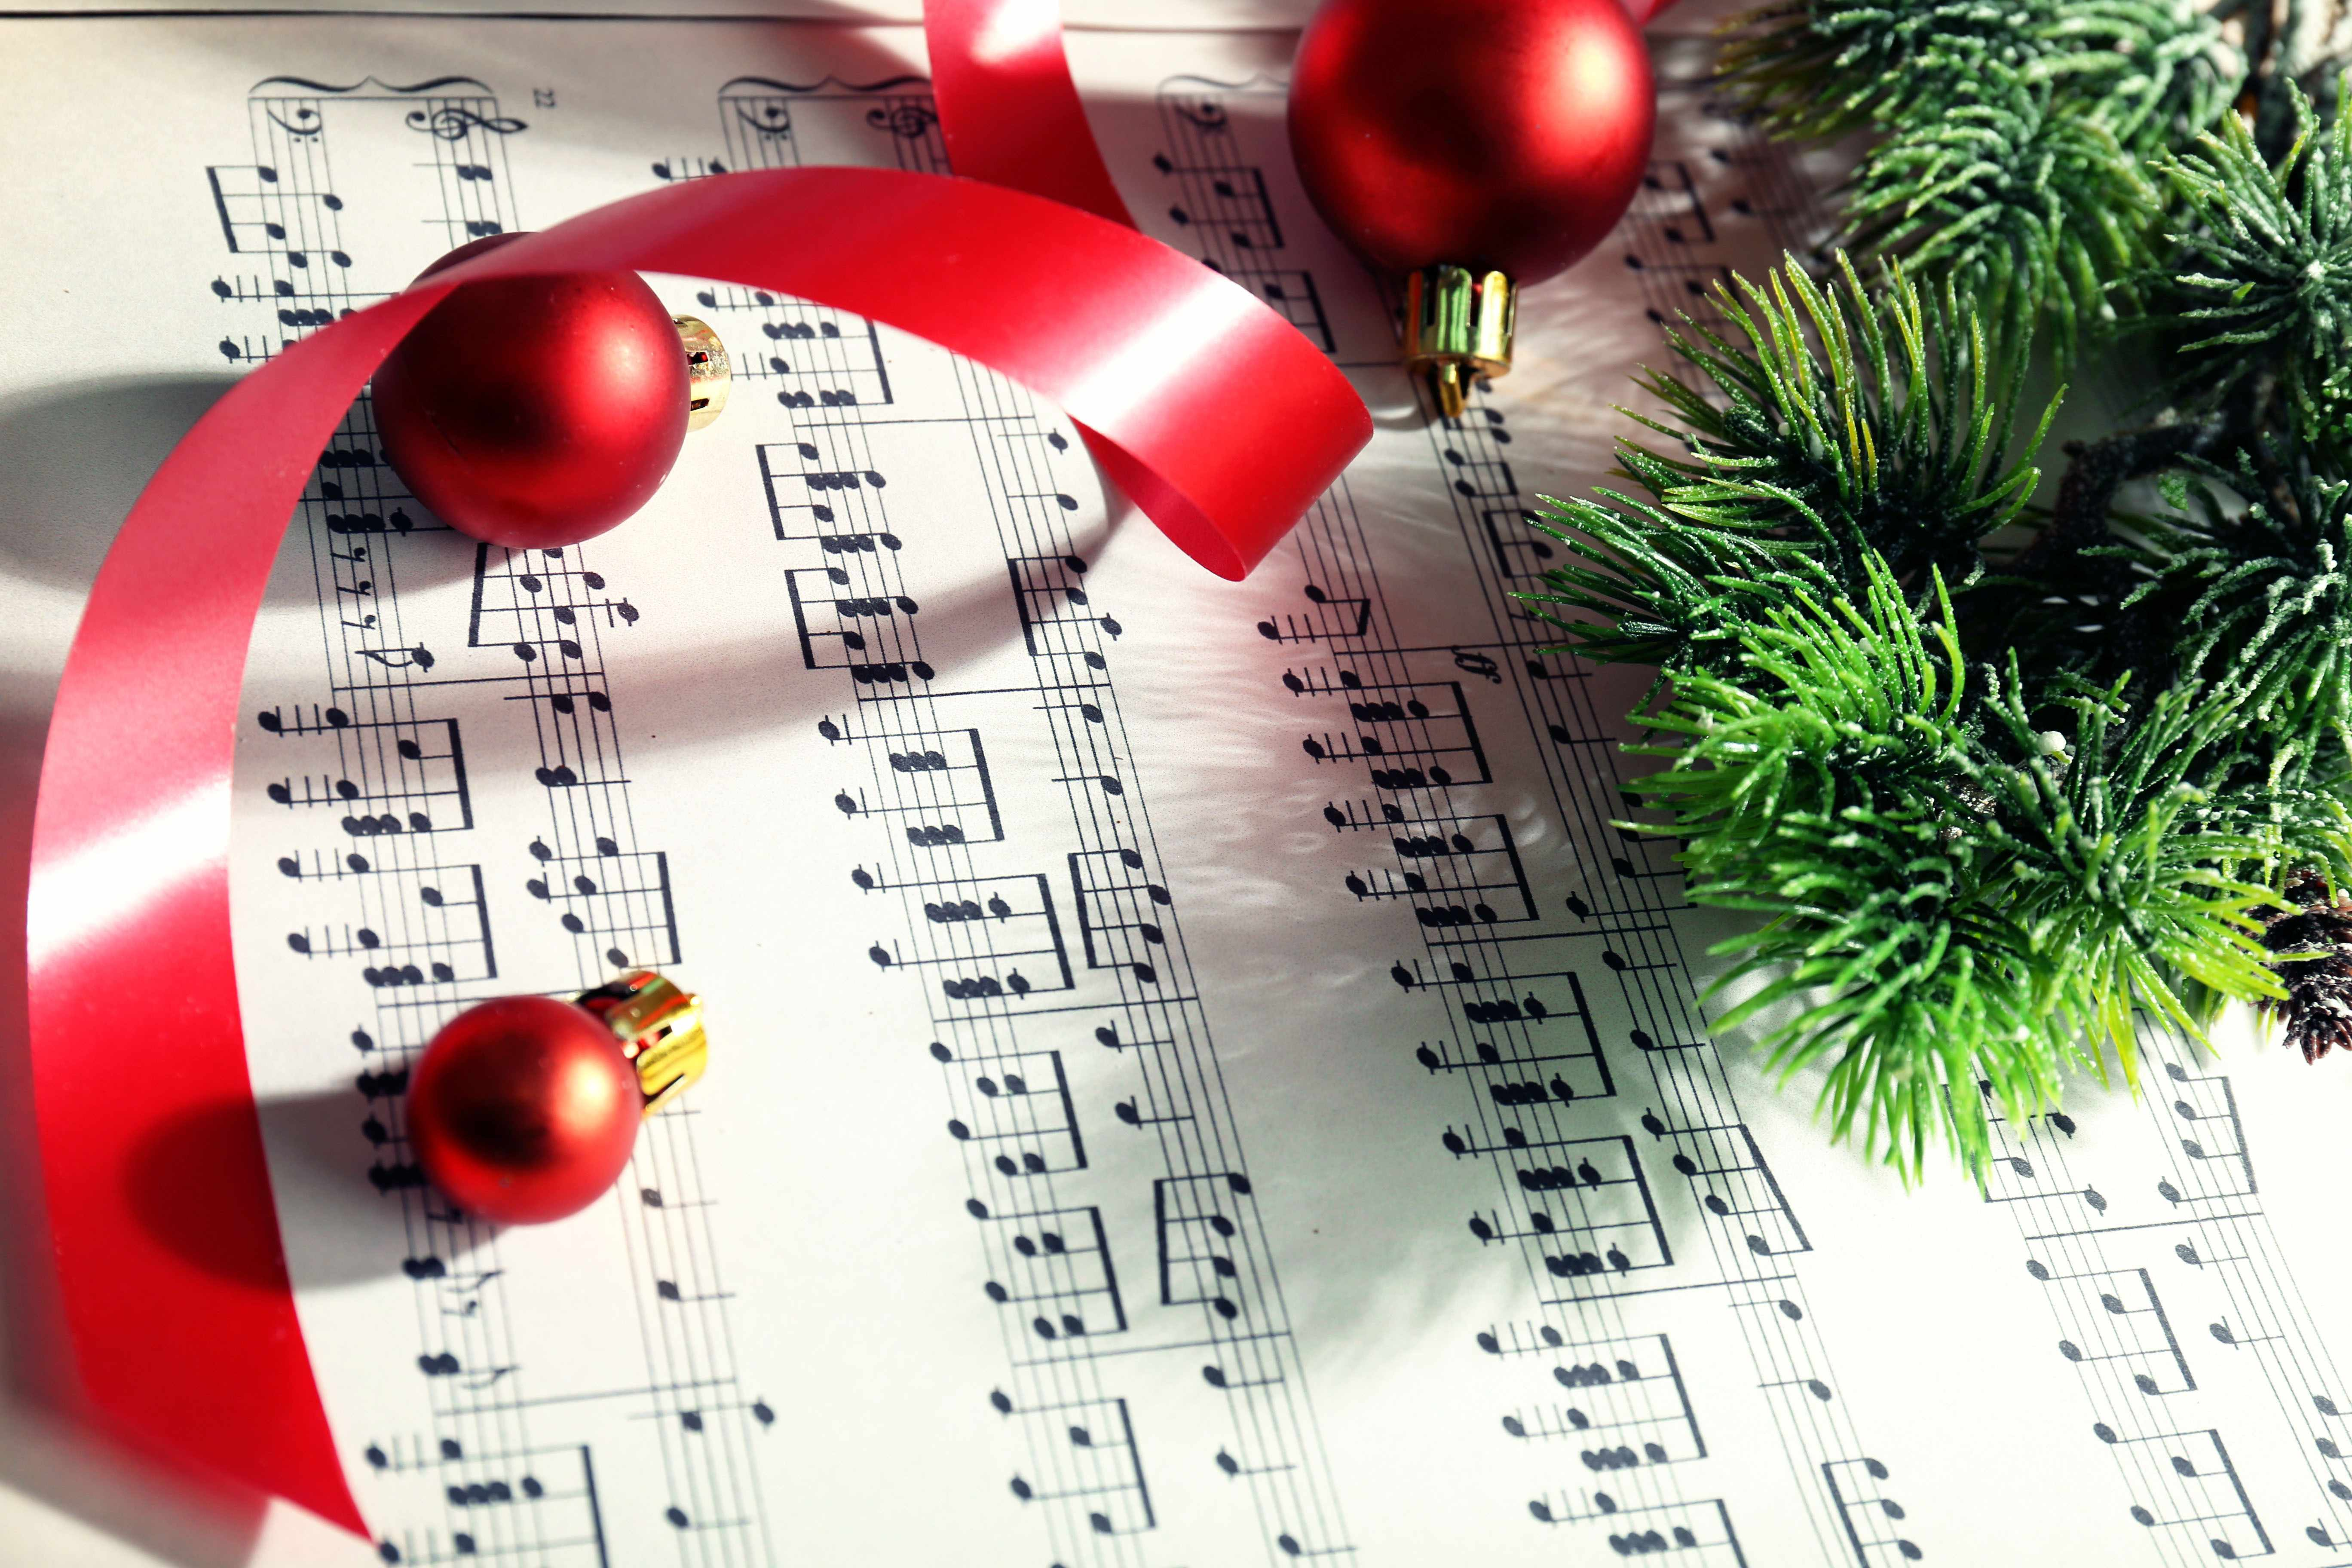 sheet music with holiday ornaments, ribbons and evergreen branches